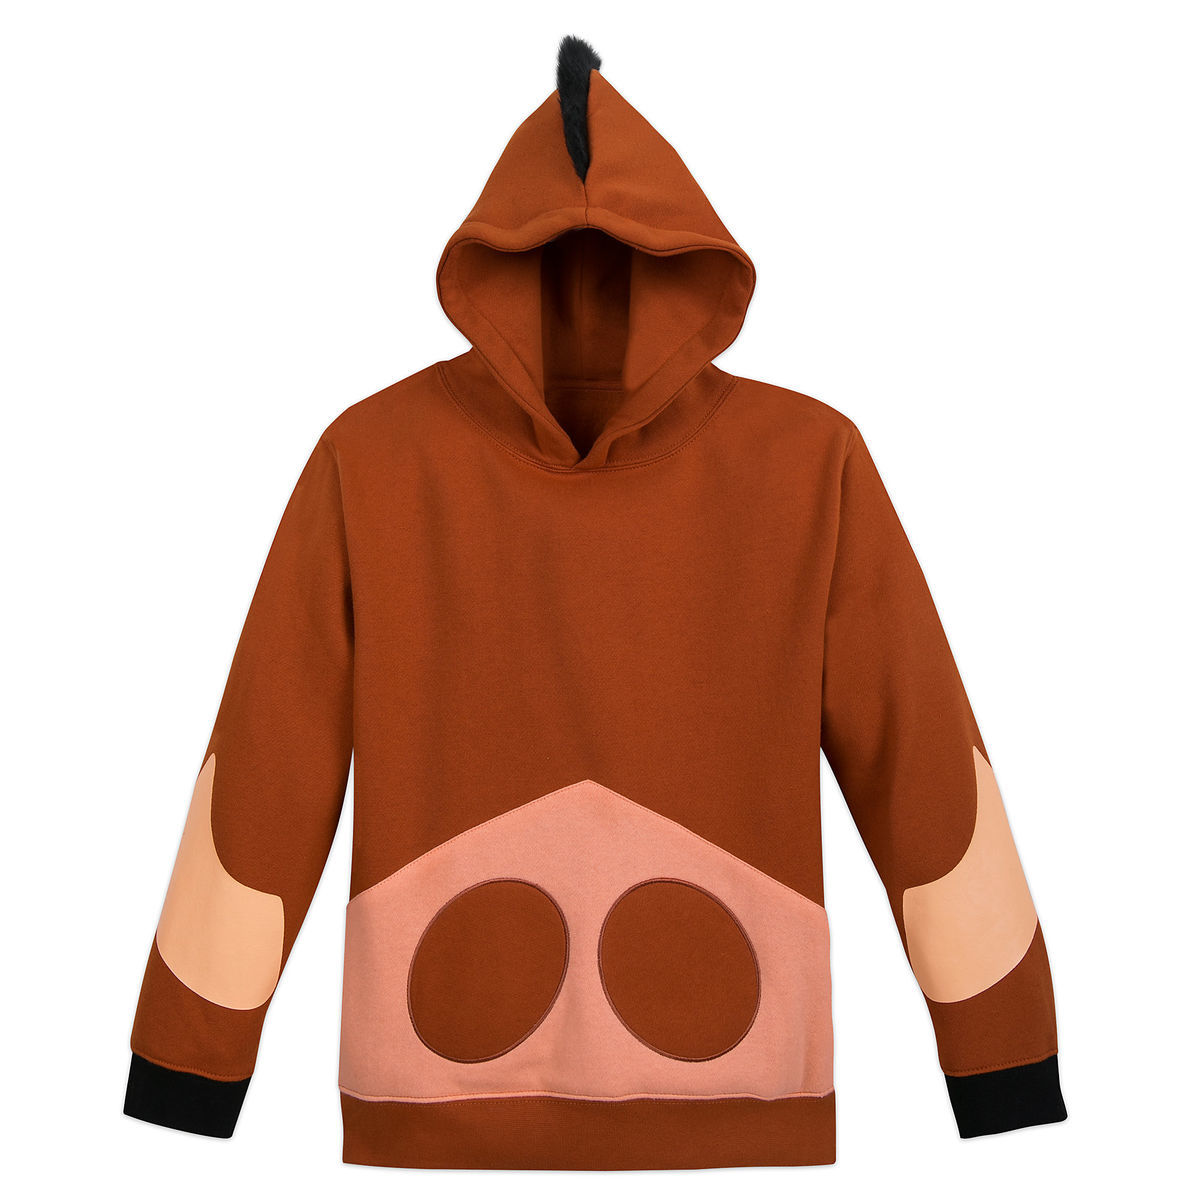 Disney Pullover Hoodie For Kids Pumbaa The Lion King Chd